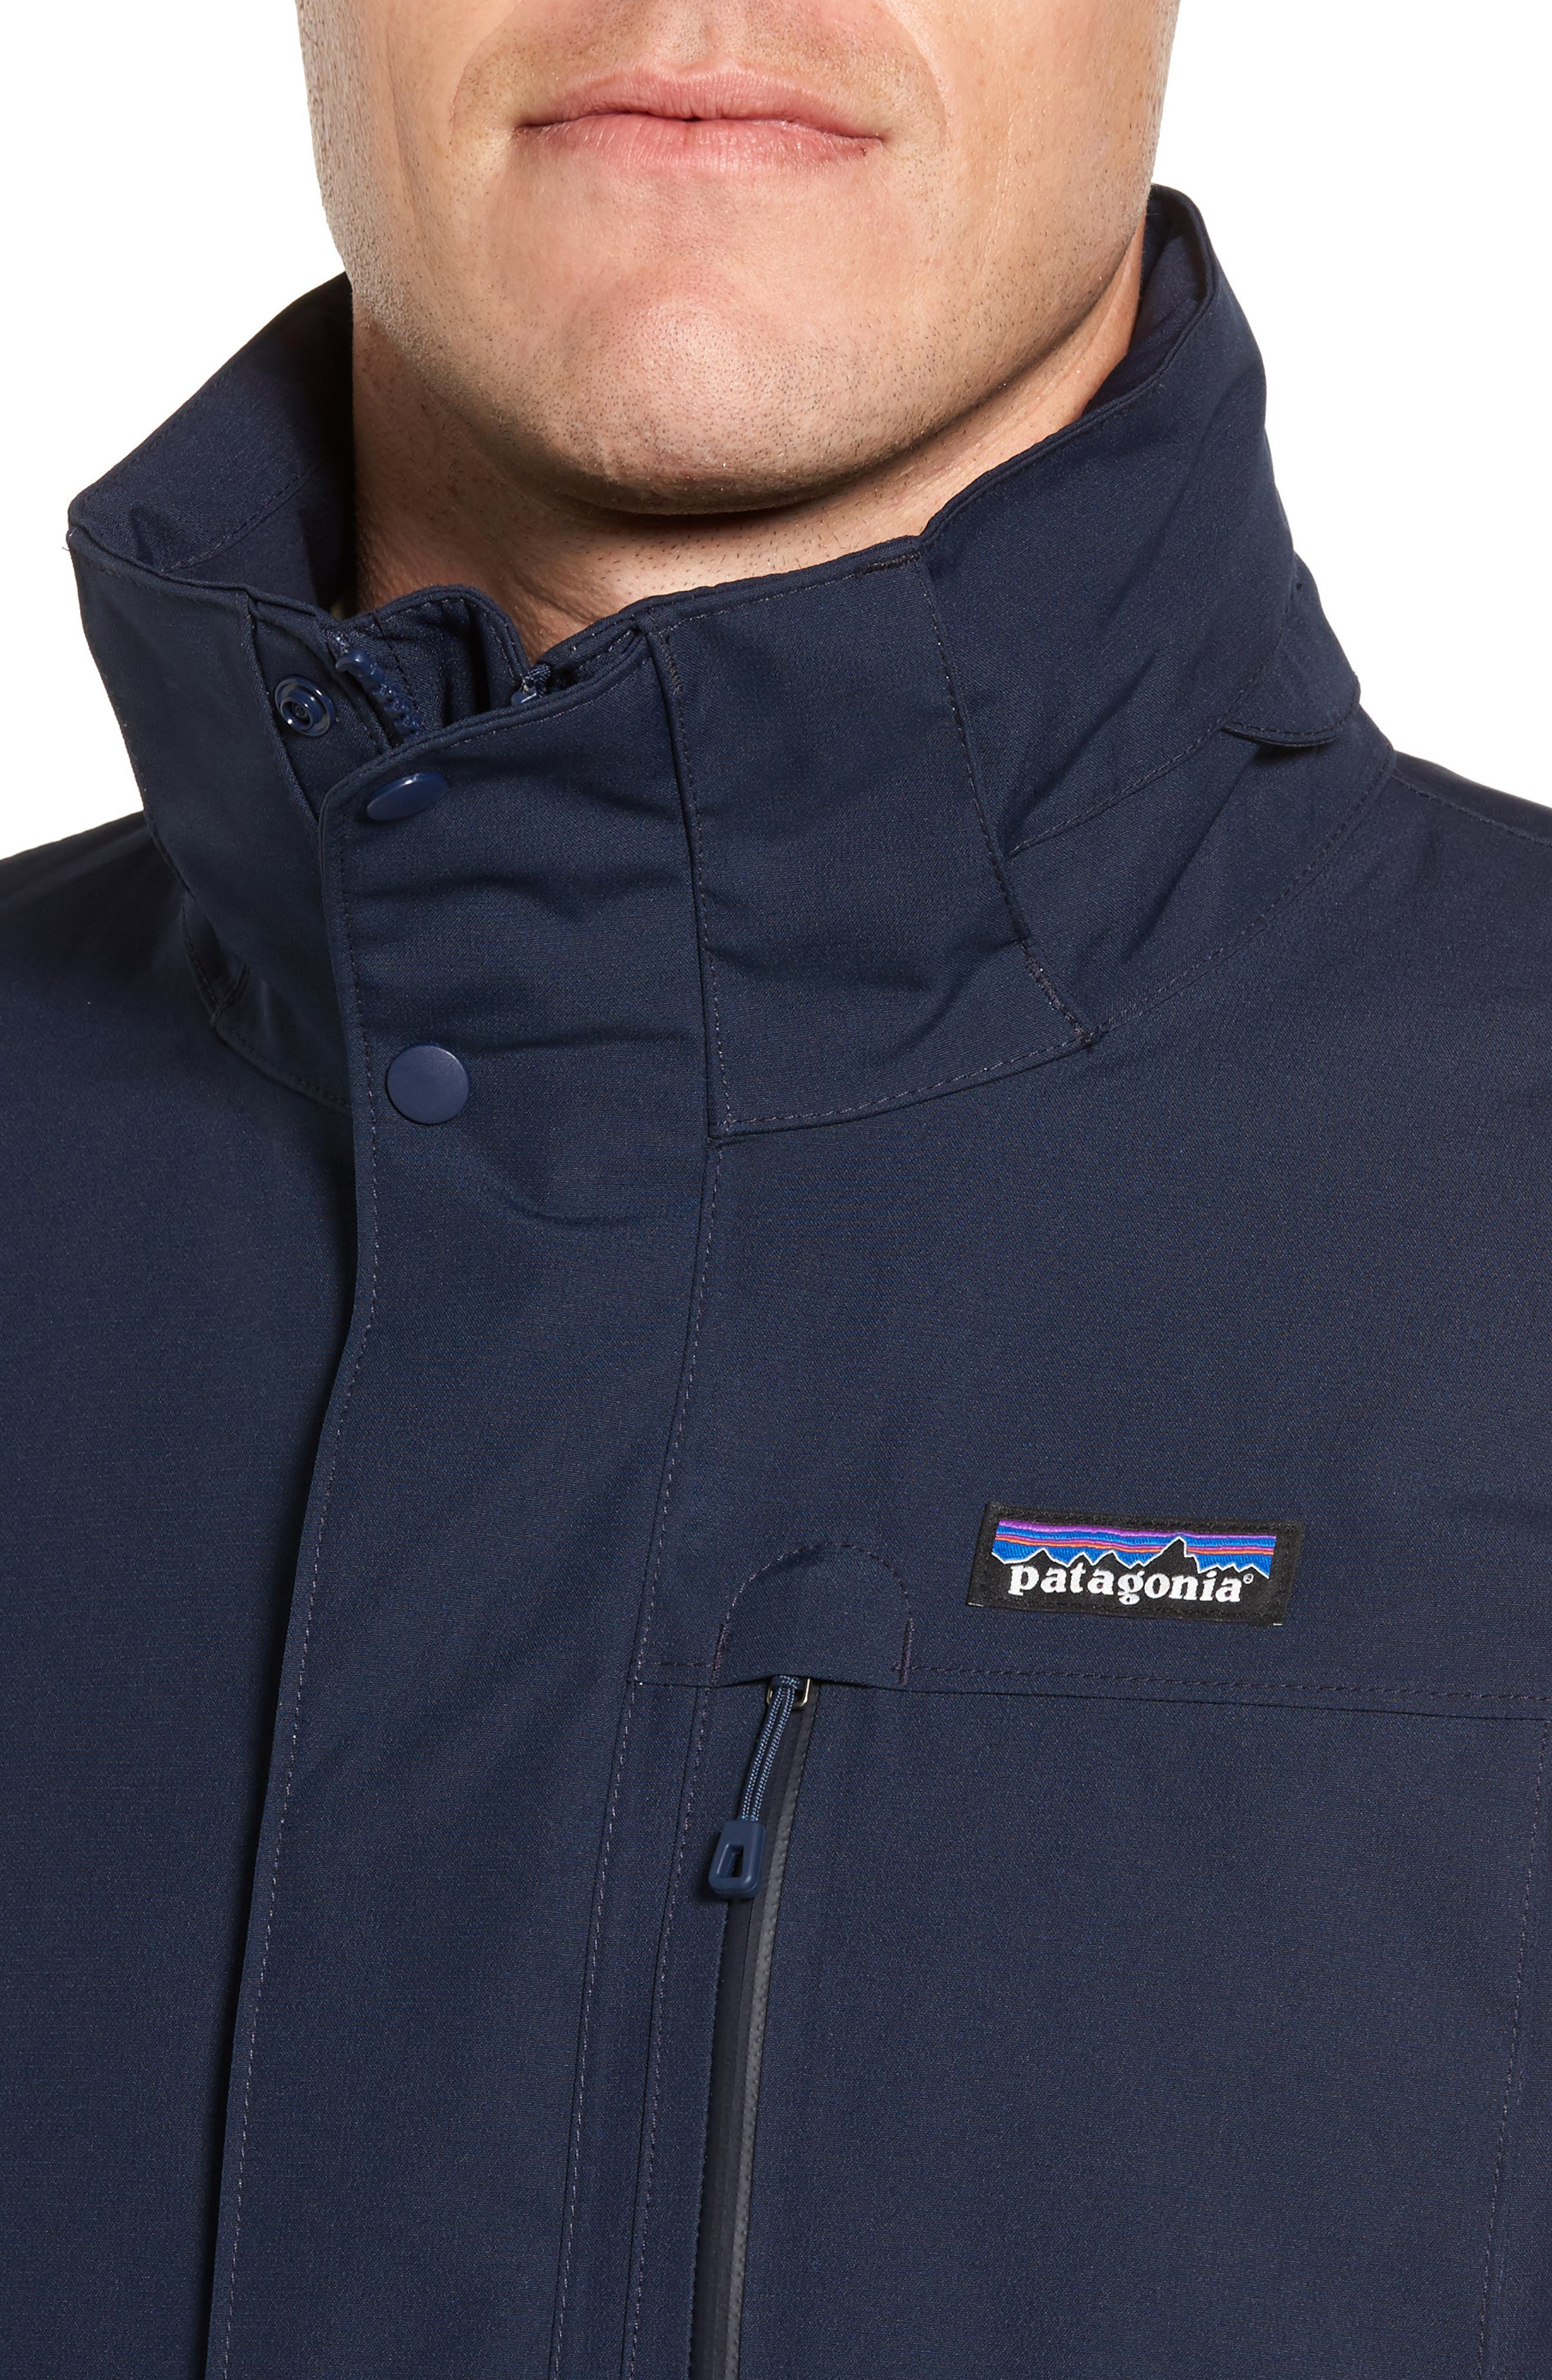 Topley Waterproof Jacket,                             Alternate thumbnail 4, color,                             Navy Blue